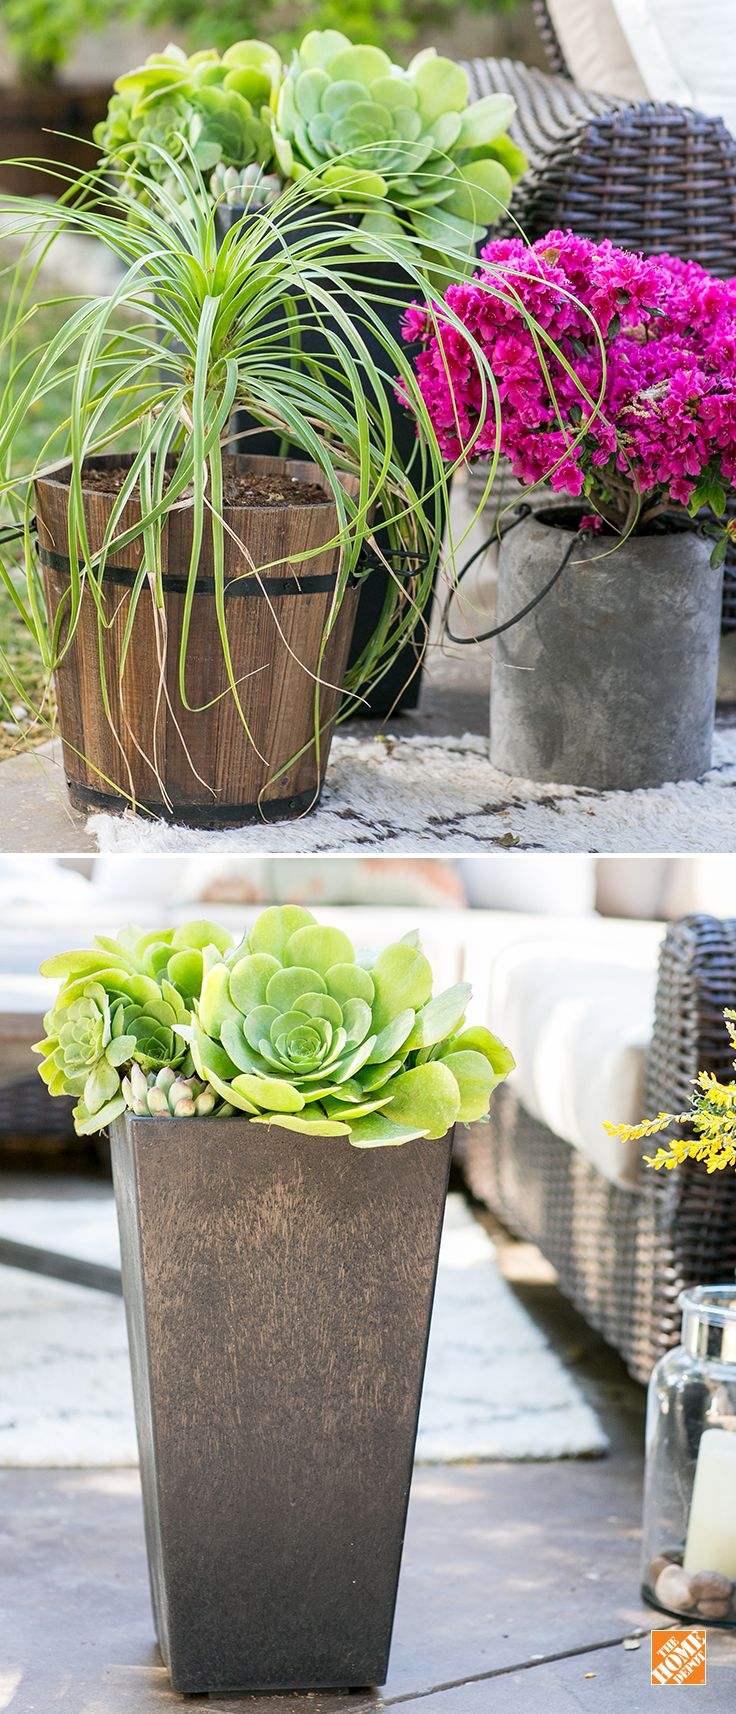 Best 25+ Tall Planters Ideas On Pinterest | Outdoor Potted Plants, Sideyard  Ideas And Potted Plants